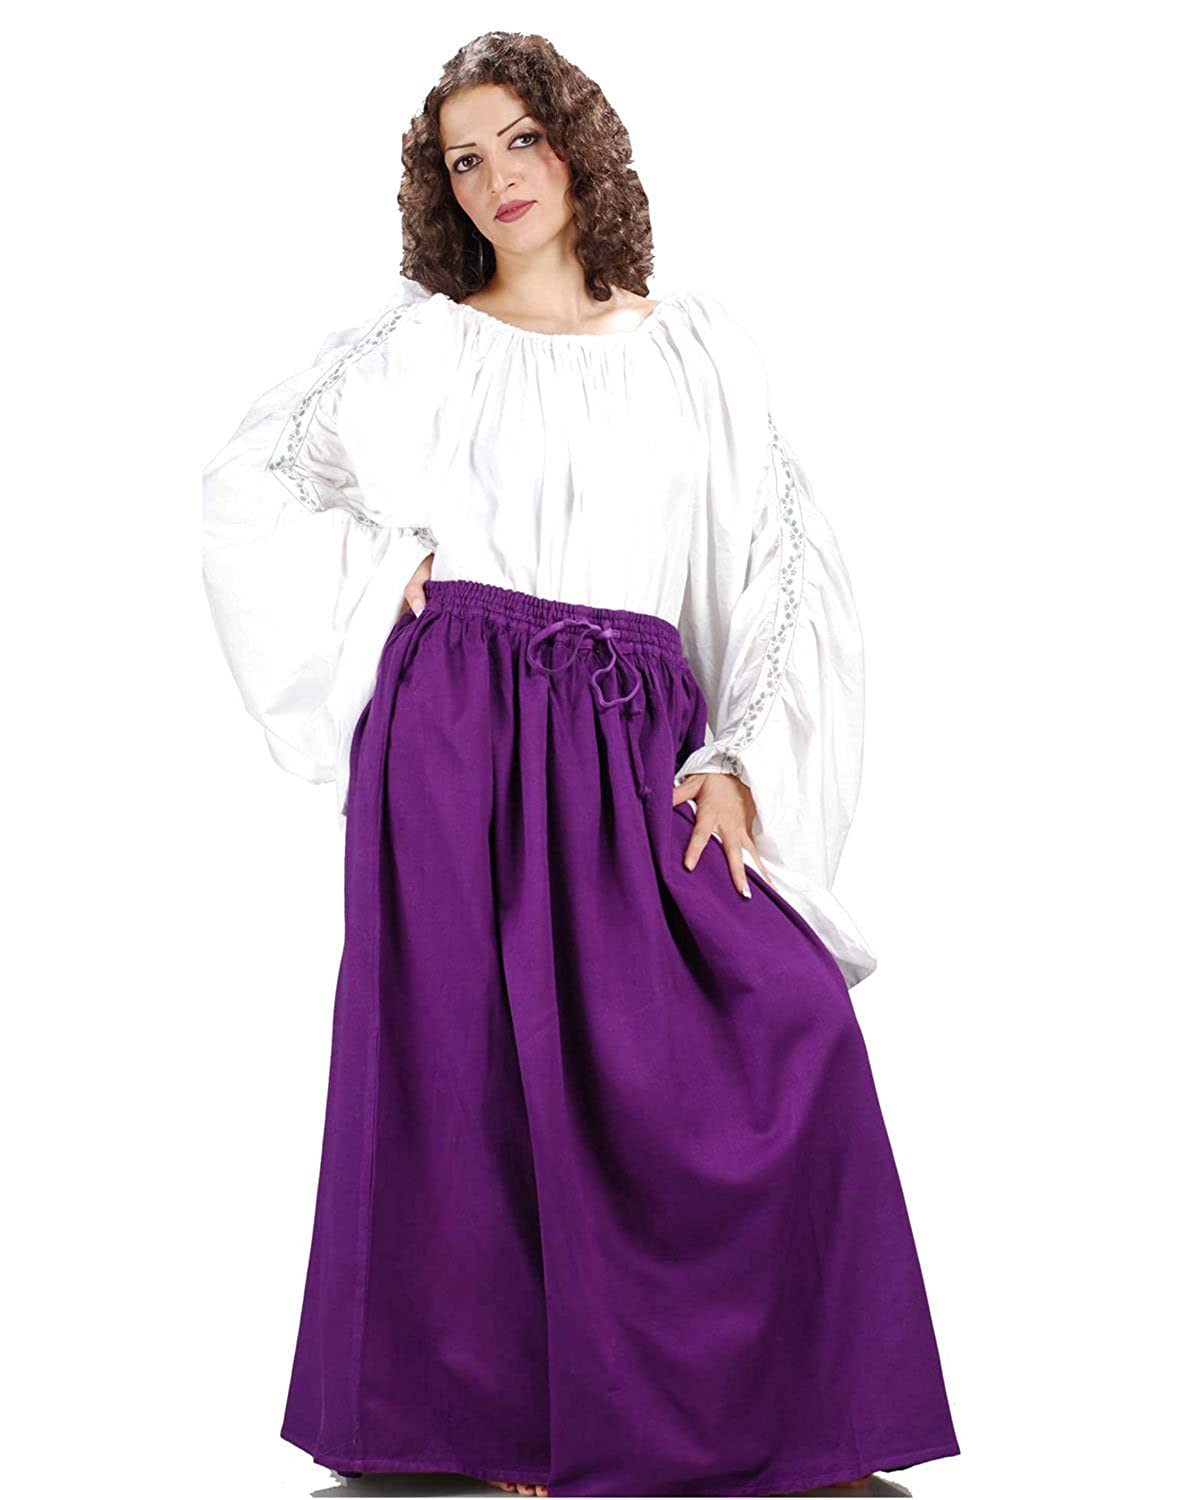 Women's Classic Renaissance Medieval Purple Cotton Wench Skirt by ThePirateDressing - DeluxeAdultCostumes.com